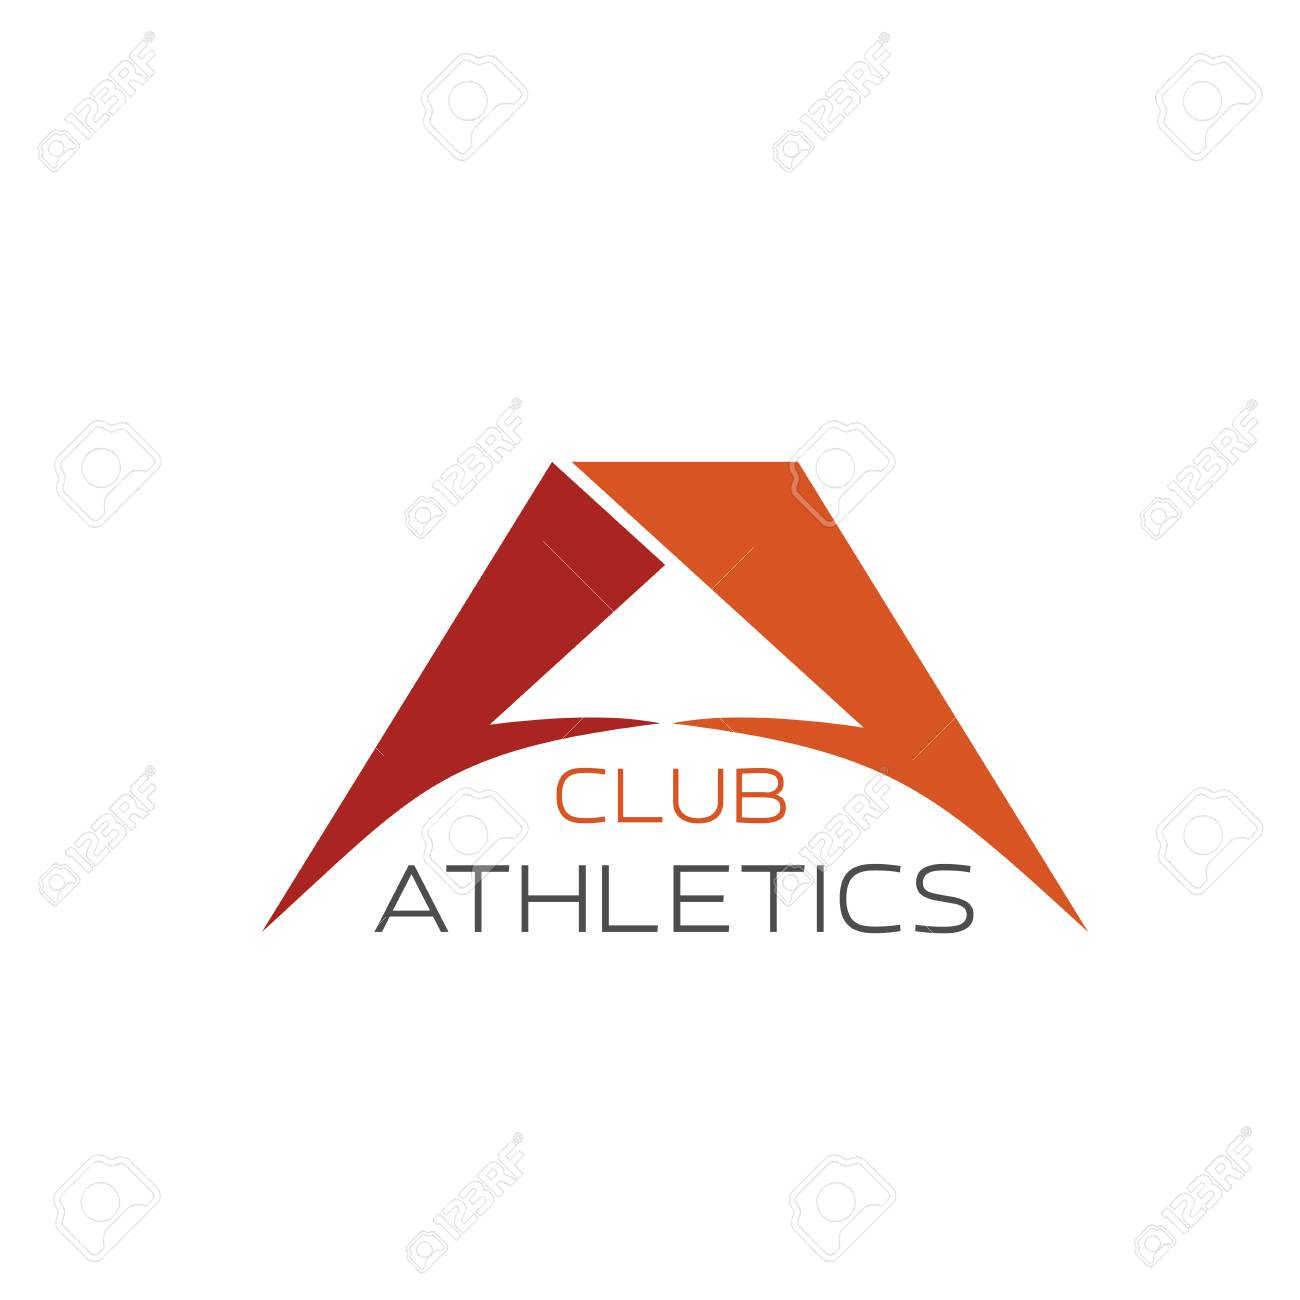 athletics club or gym a letter icon for sport or fitness center royalty free cliparts vectors and stock illustration image 114520554 123rf com